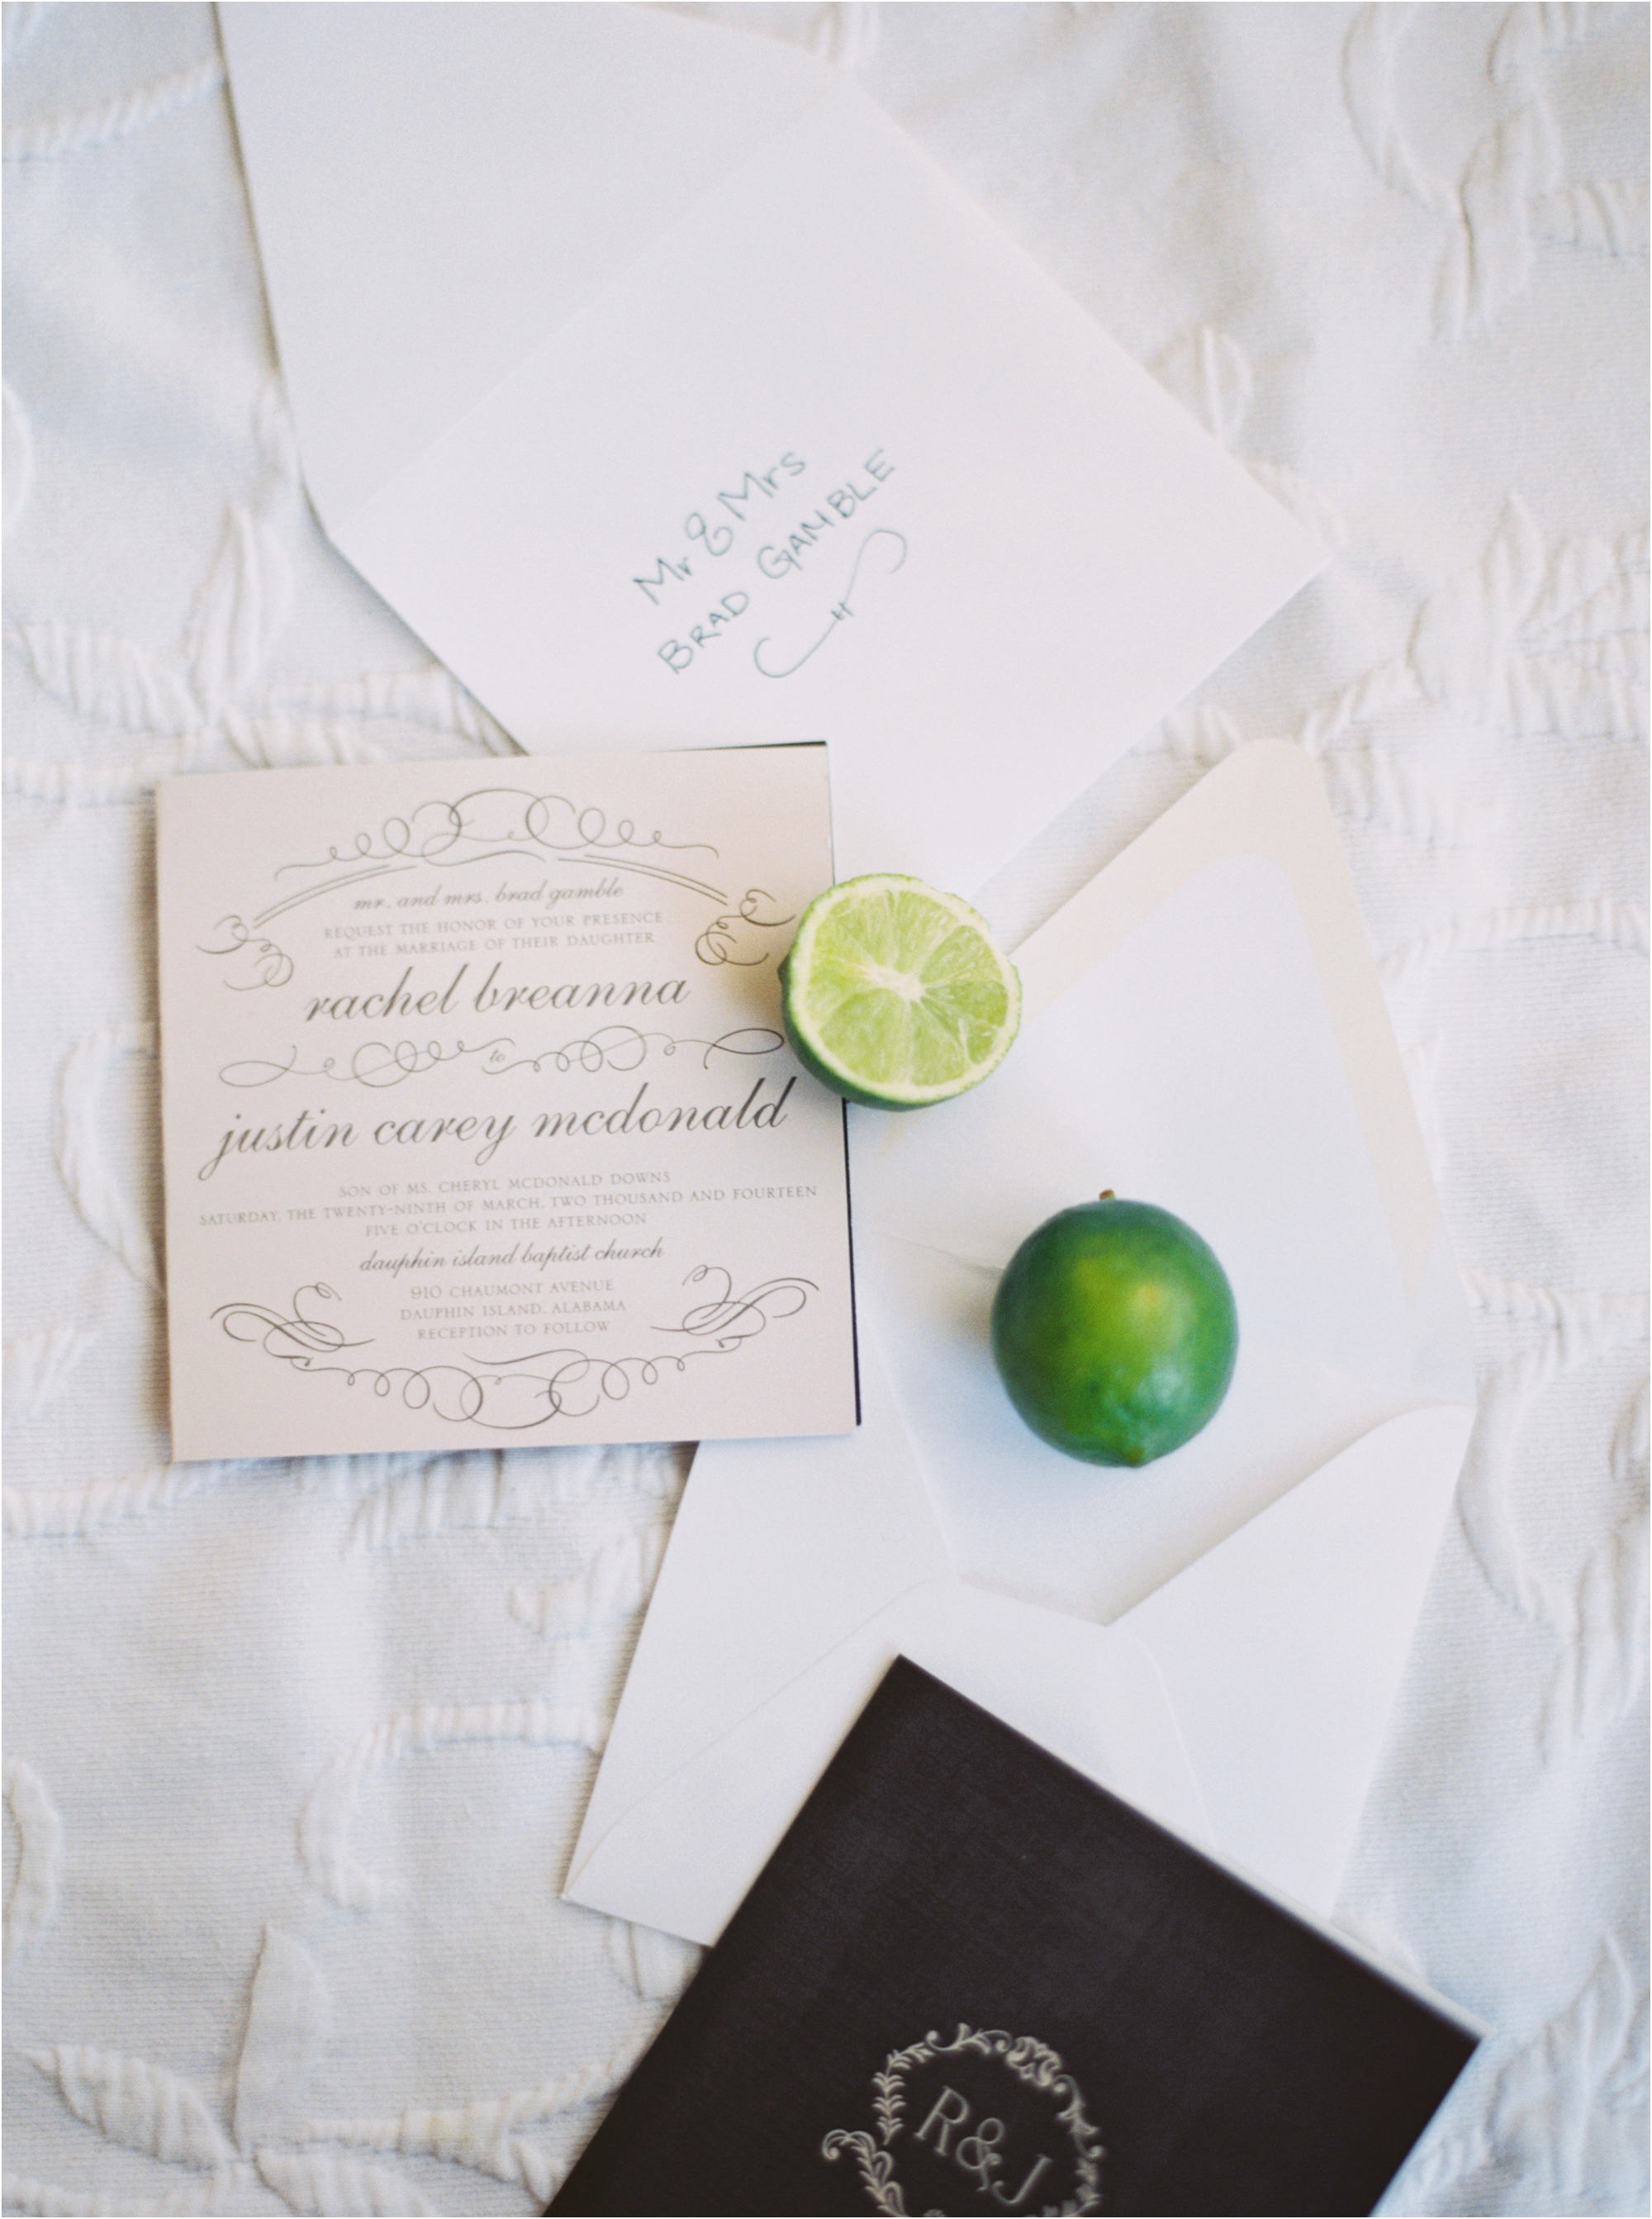 7 Solutions for Invitation Suite Photos - The Jordan Brittley Blog